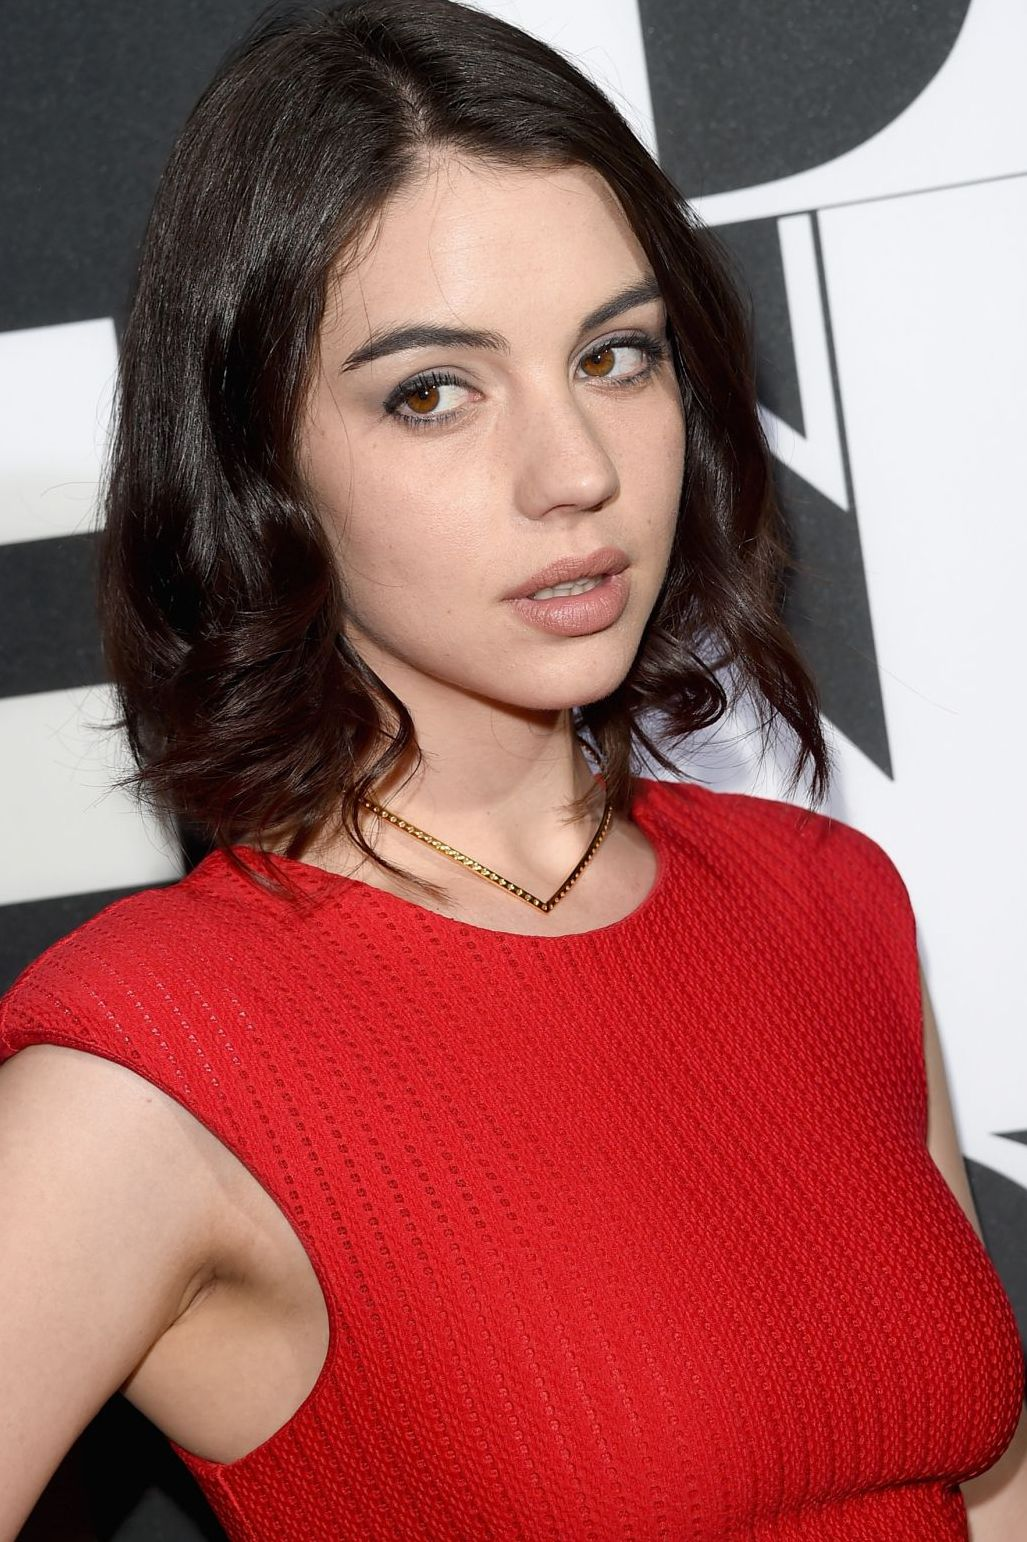 Adelaide Kane nudes (53 fotos) Paparazzi, 2020, see through